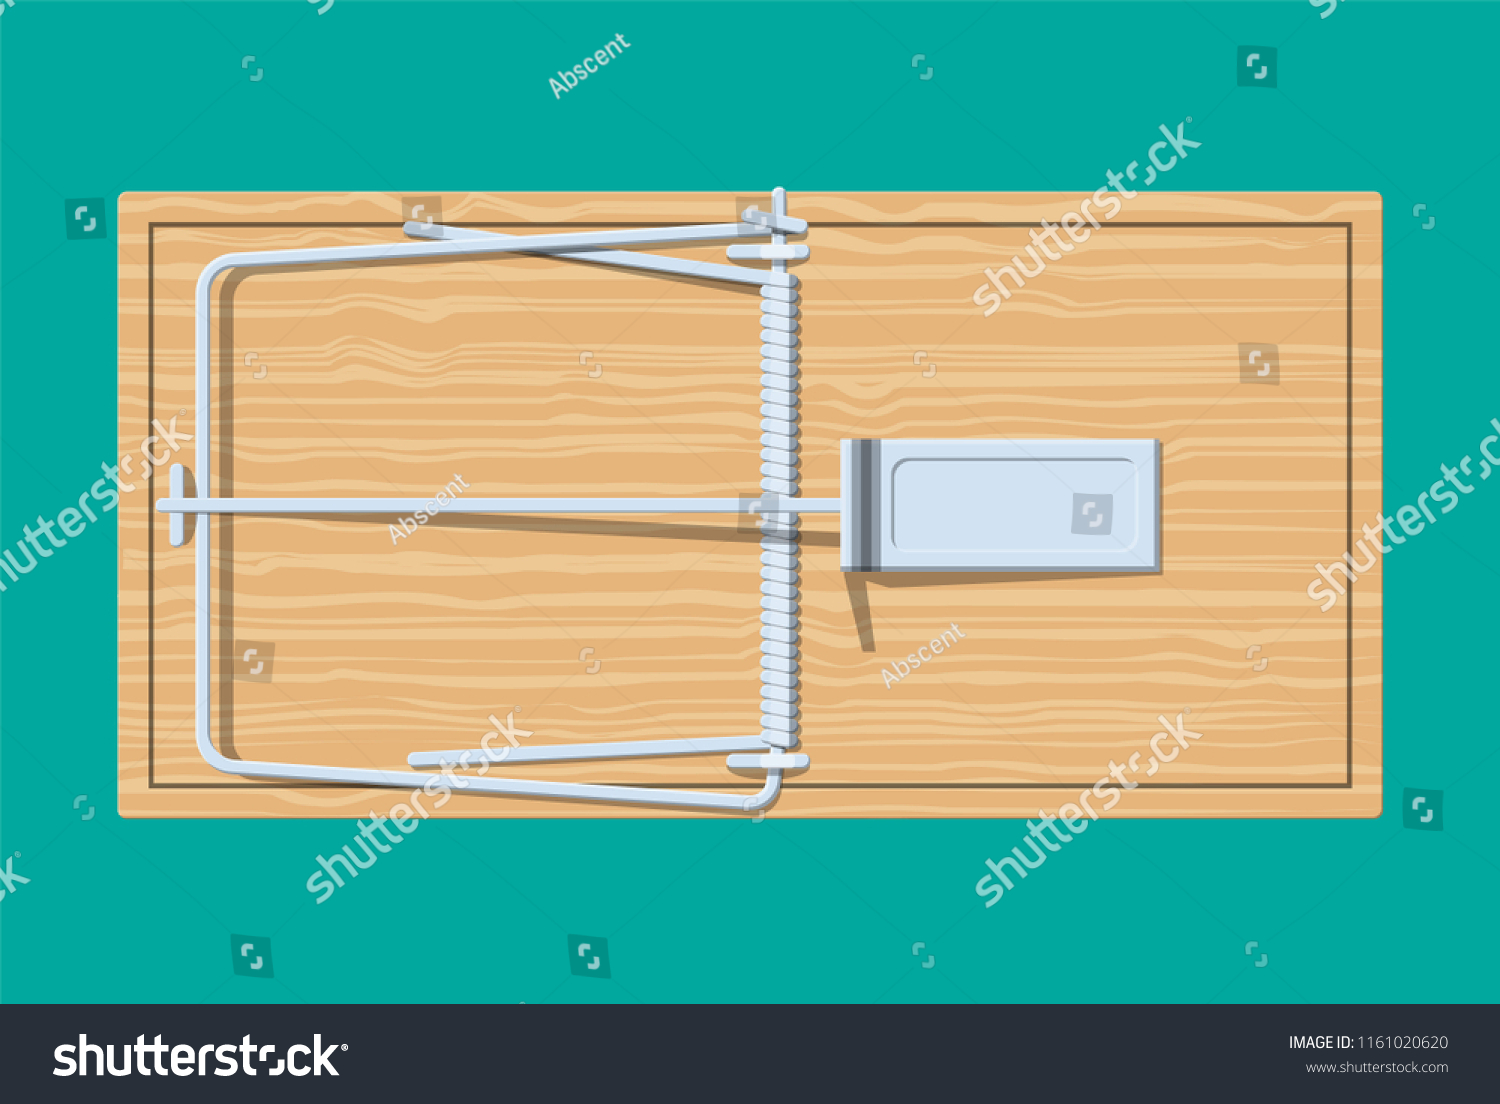 Wooden mouse trap, classical spring loaded bar trap. Top view. Vector illustration in flat style